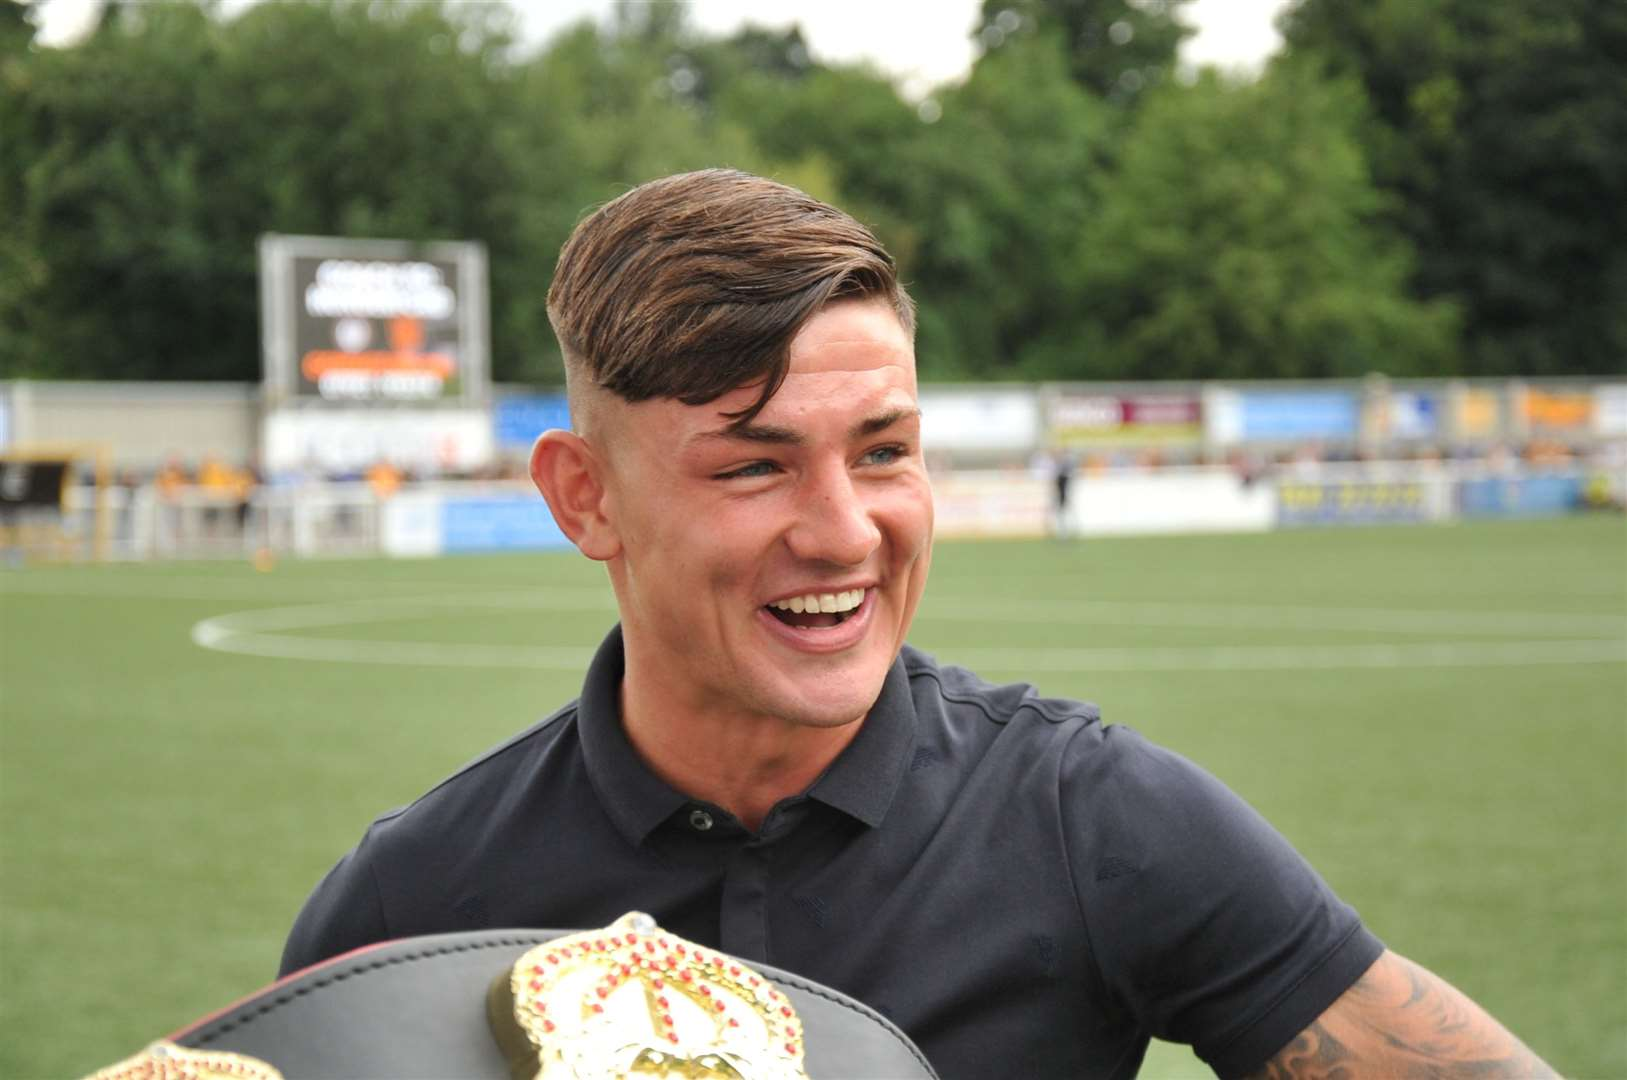 Sam Noakes visits hometown football club Maidstone United Picture: Steve Terrell